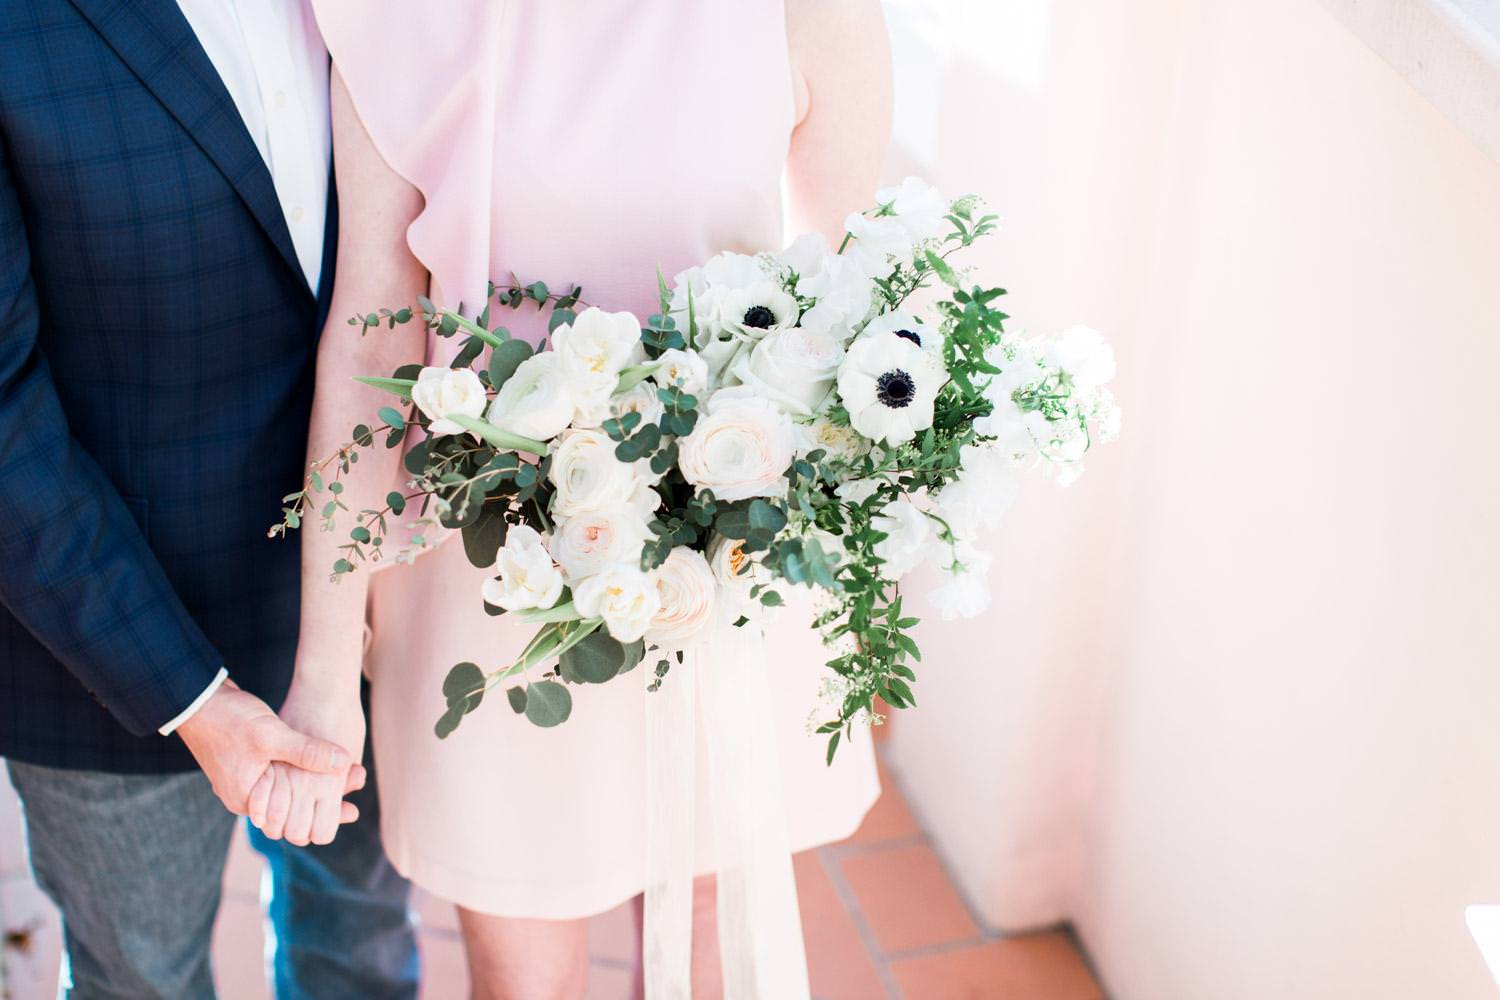 Formal La Valencia Anniversary Photos in La Jolla, Gorgeous white ranuncula and anemone white and green bouquet from Adorations in San Diego, Cavin Elizabeth Photography